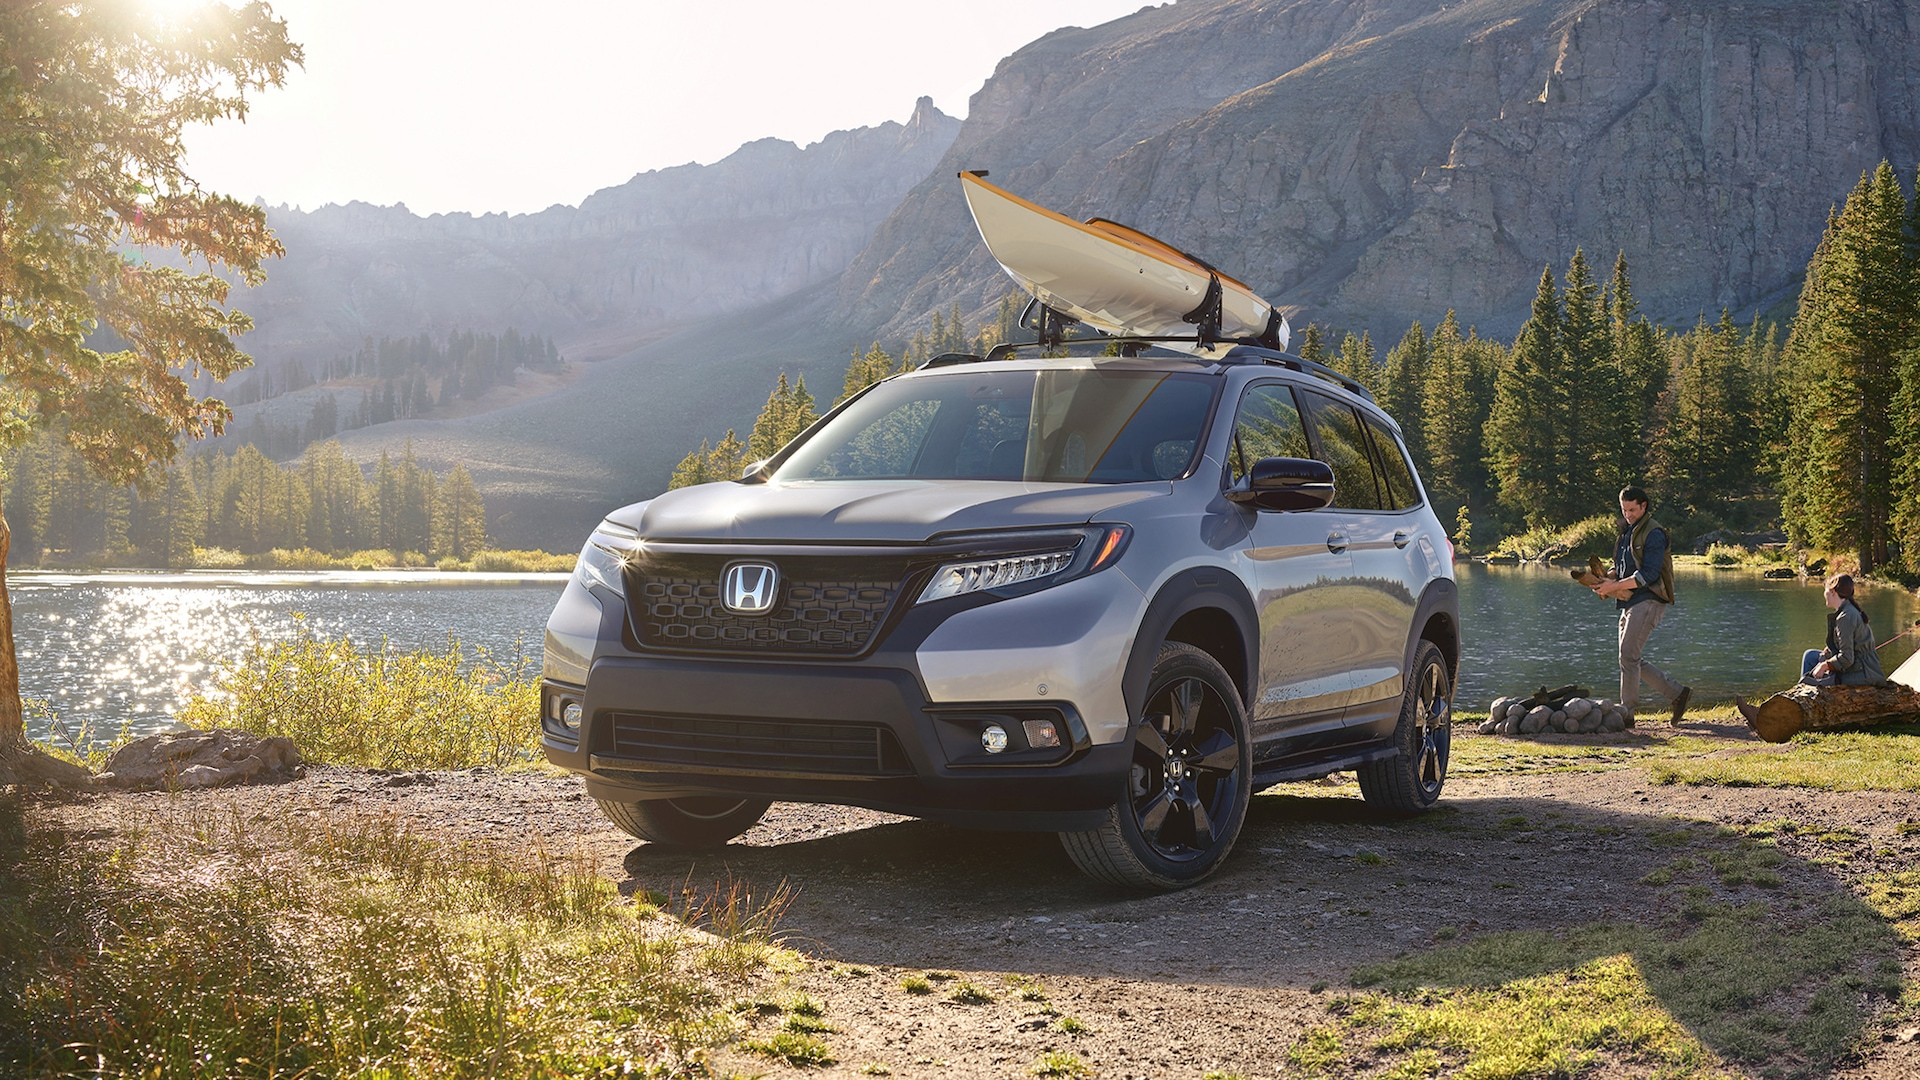 Driver-side front view of the 2021 Honda Passport Elite in Lunar Silver Metallic, with accessory kayak attachment, parked at a lakeside campground with male and female campers.